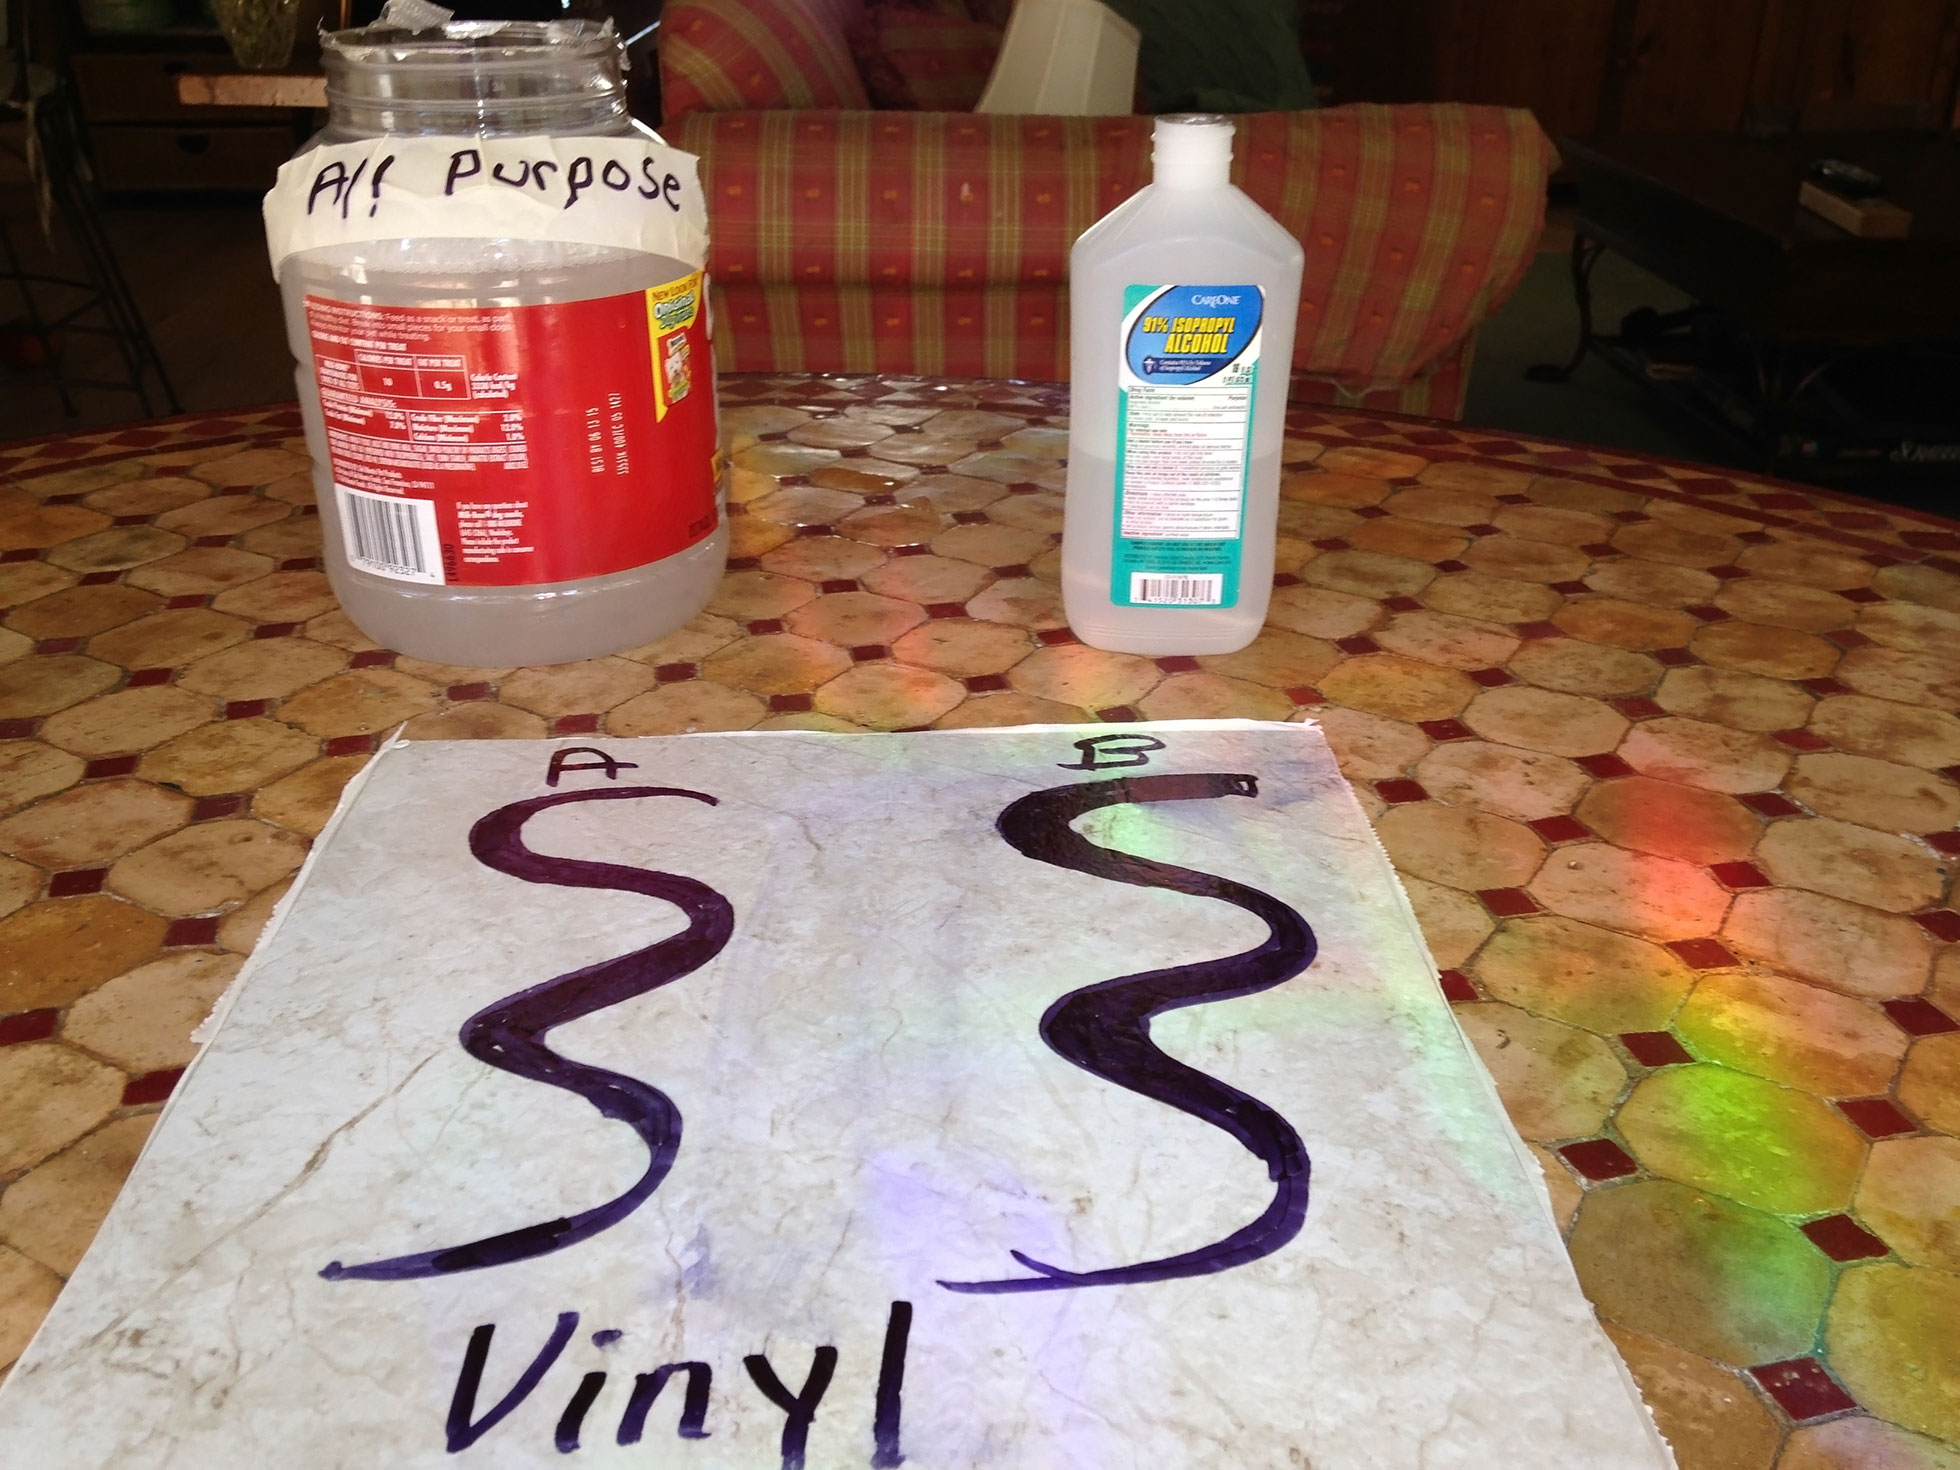 DIY vinyl floor cleaner before test